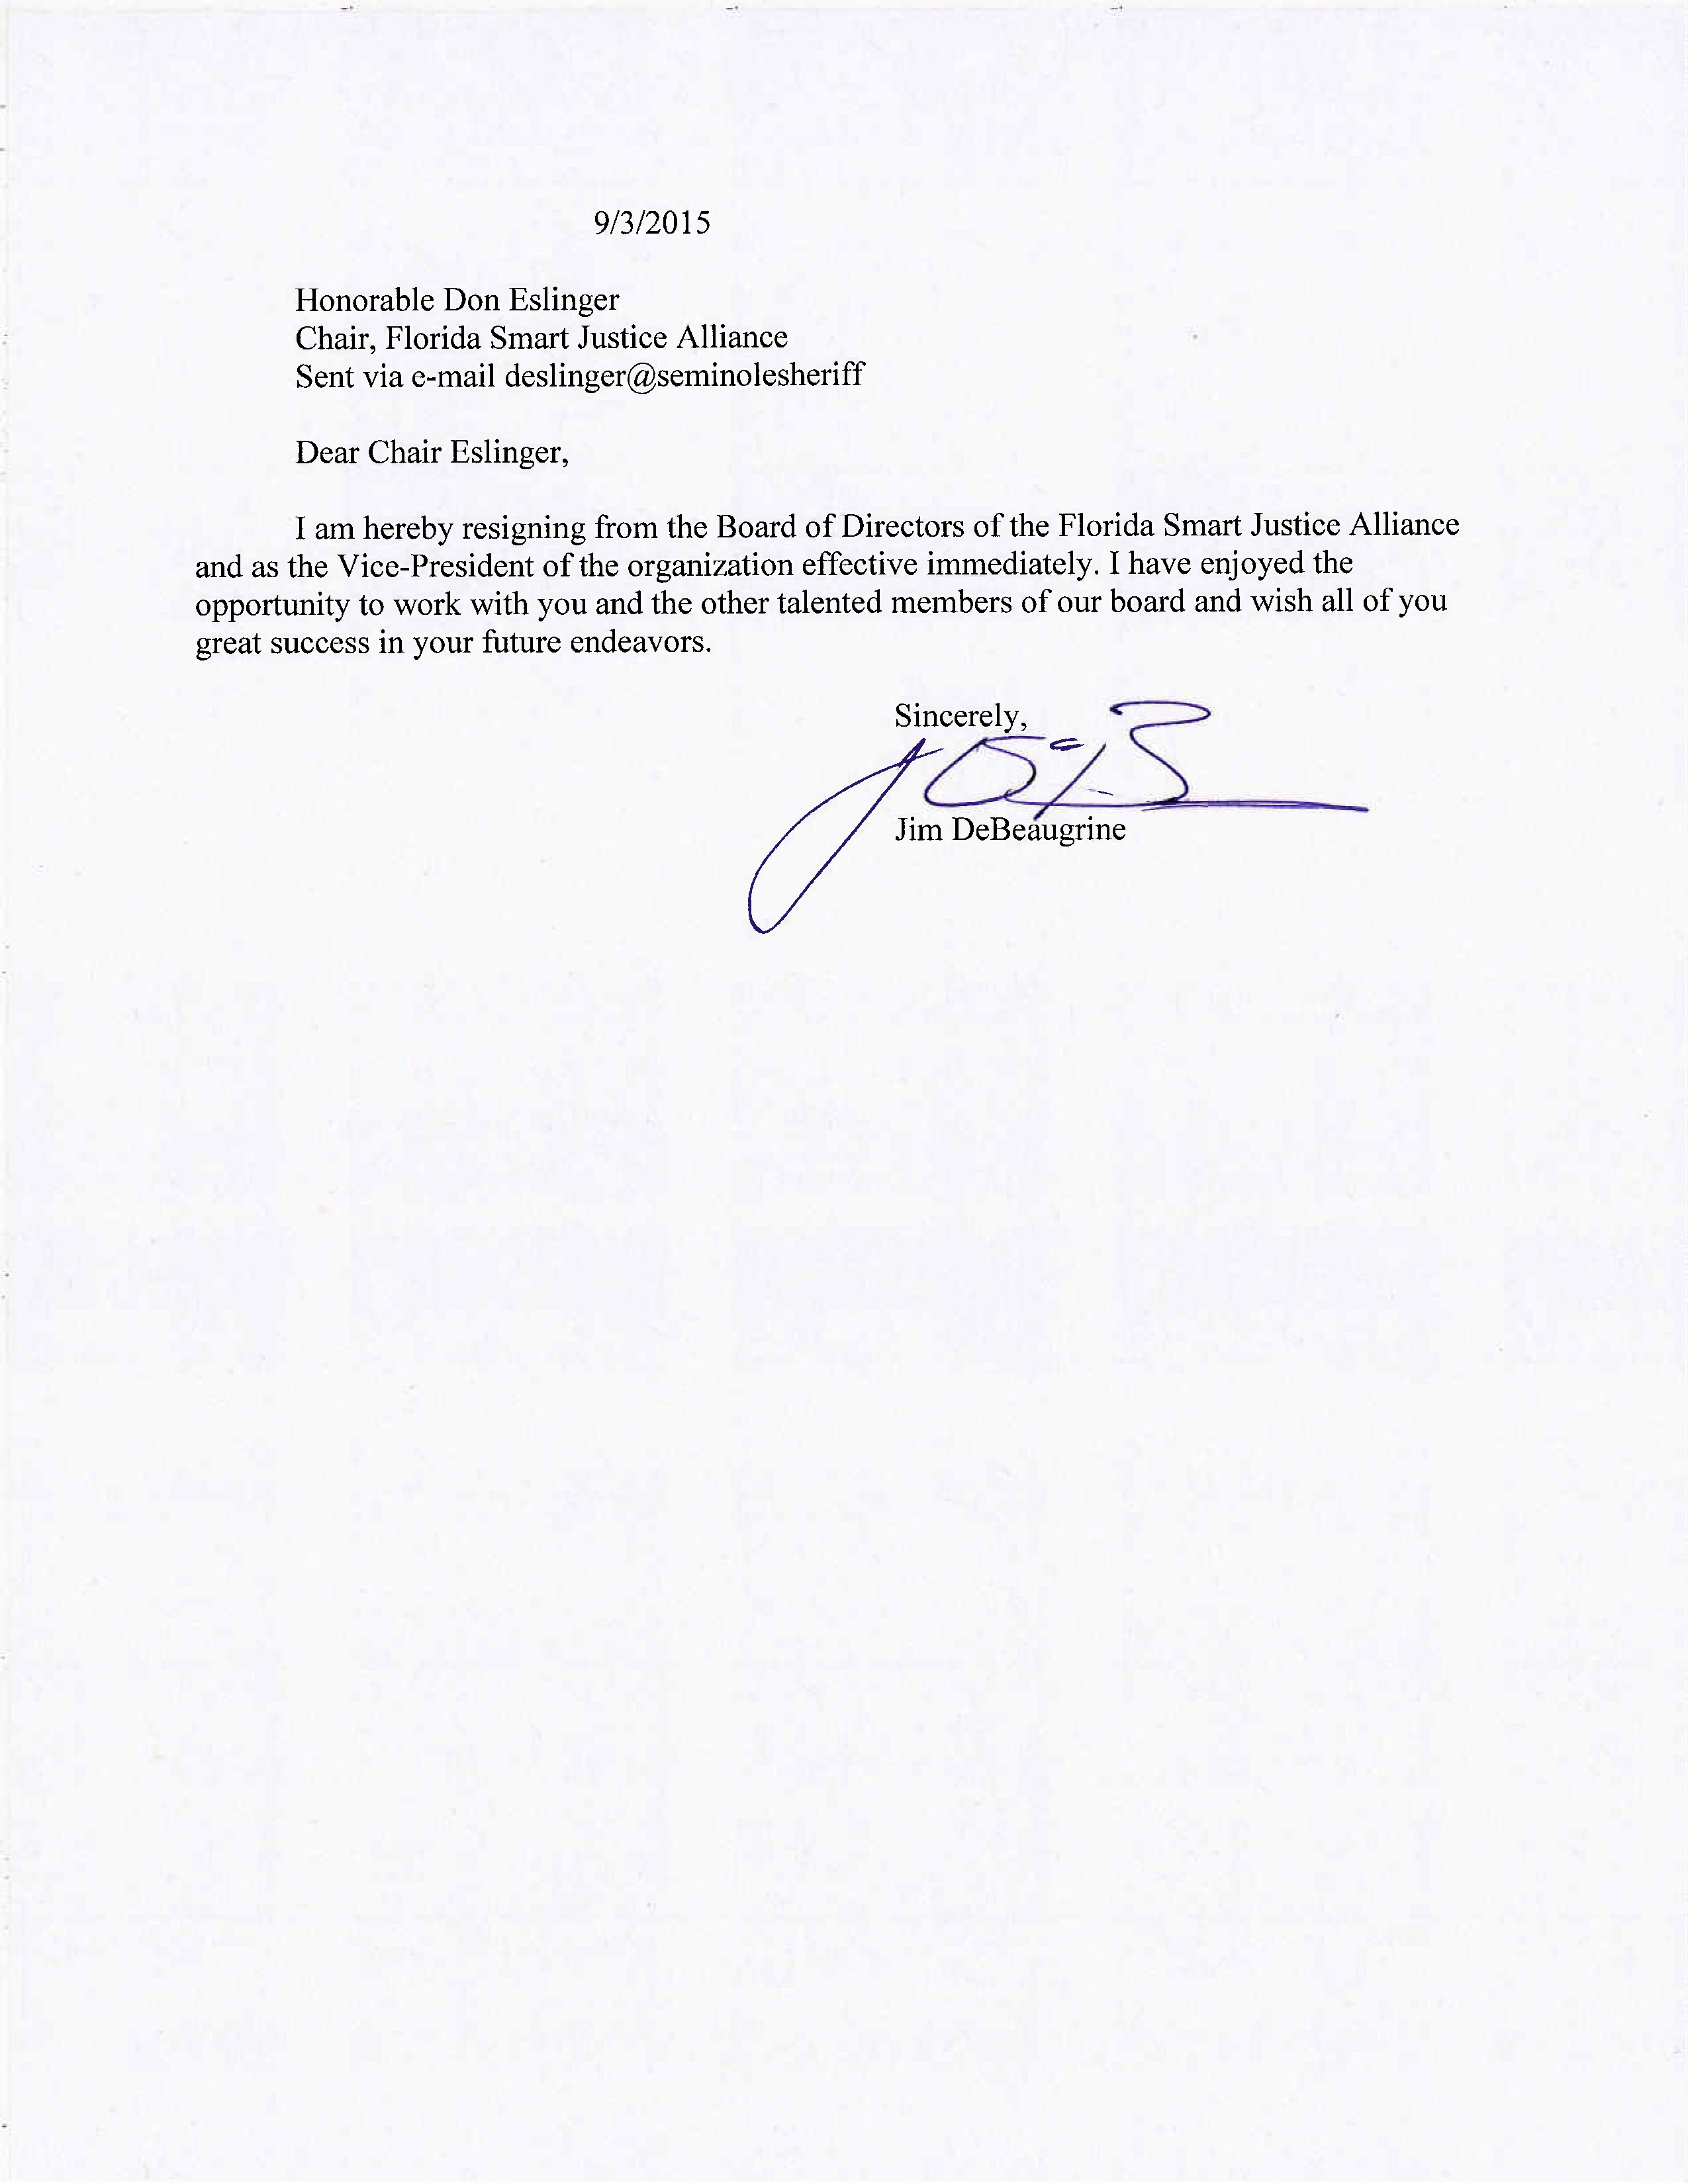 DeBeaugrine Resignation from Board of Directors of the Florida Smart Jus